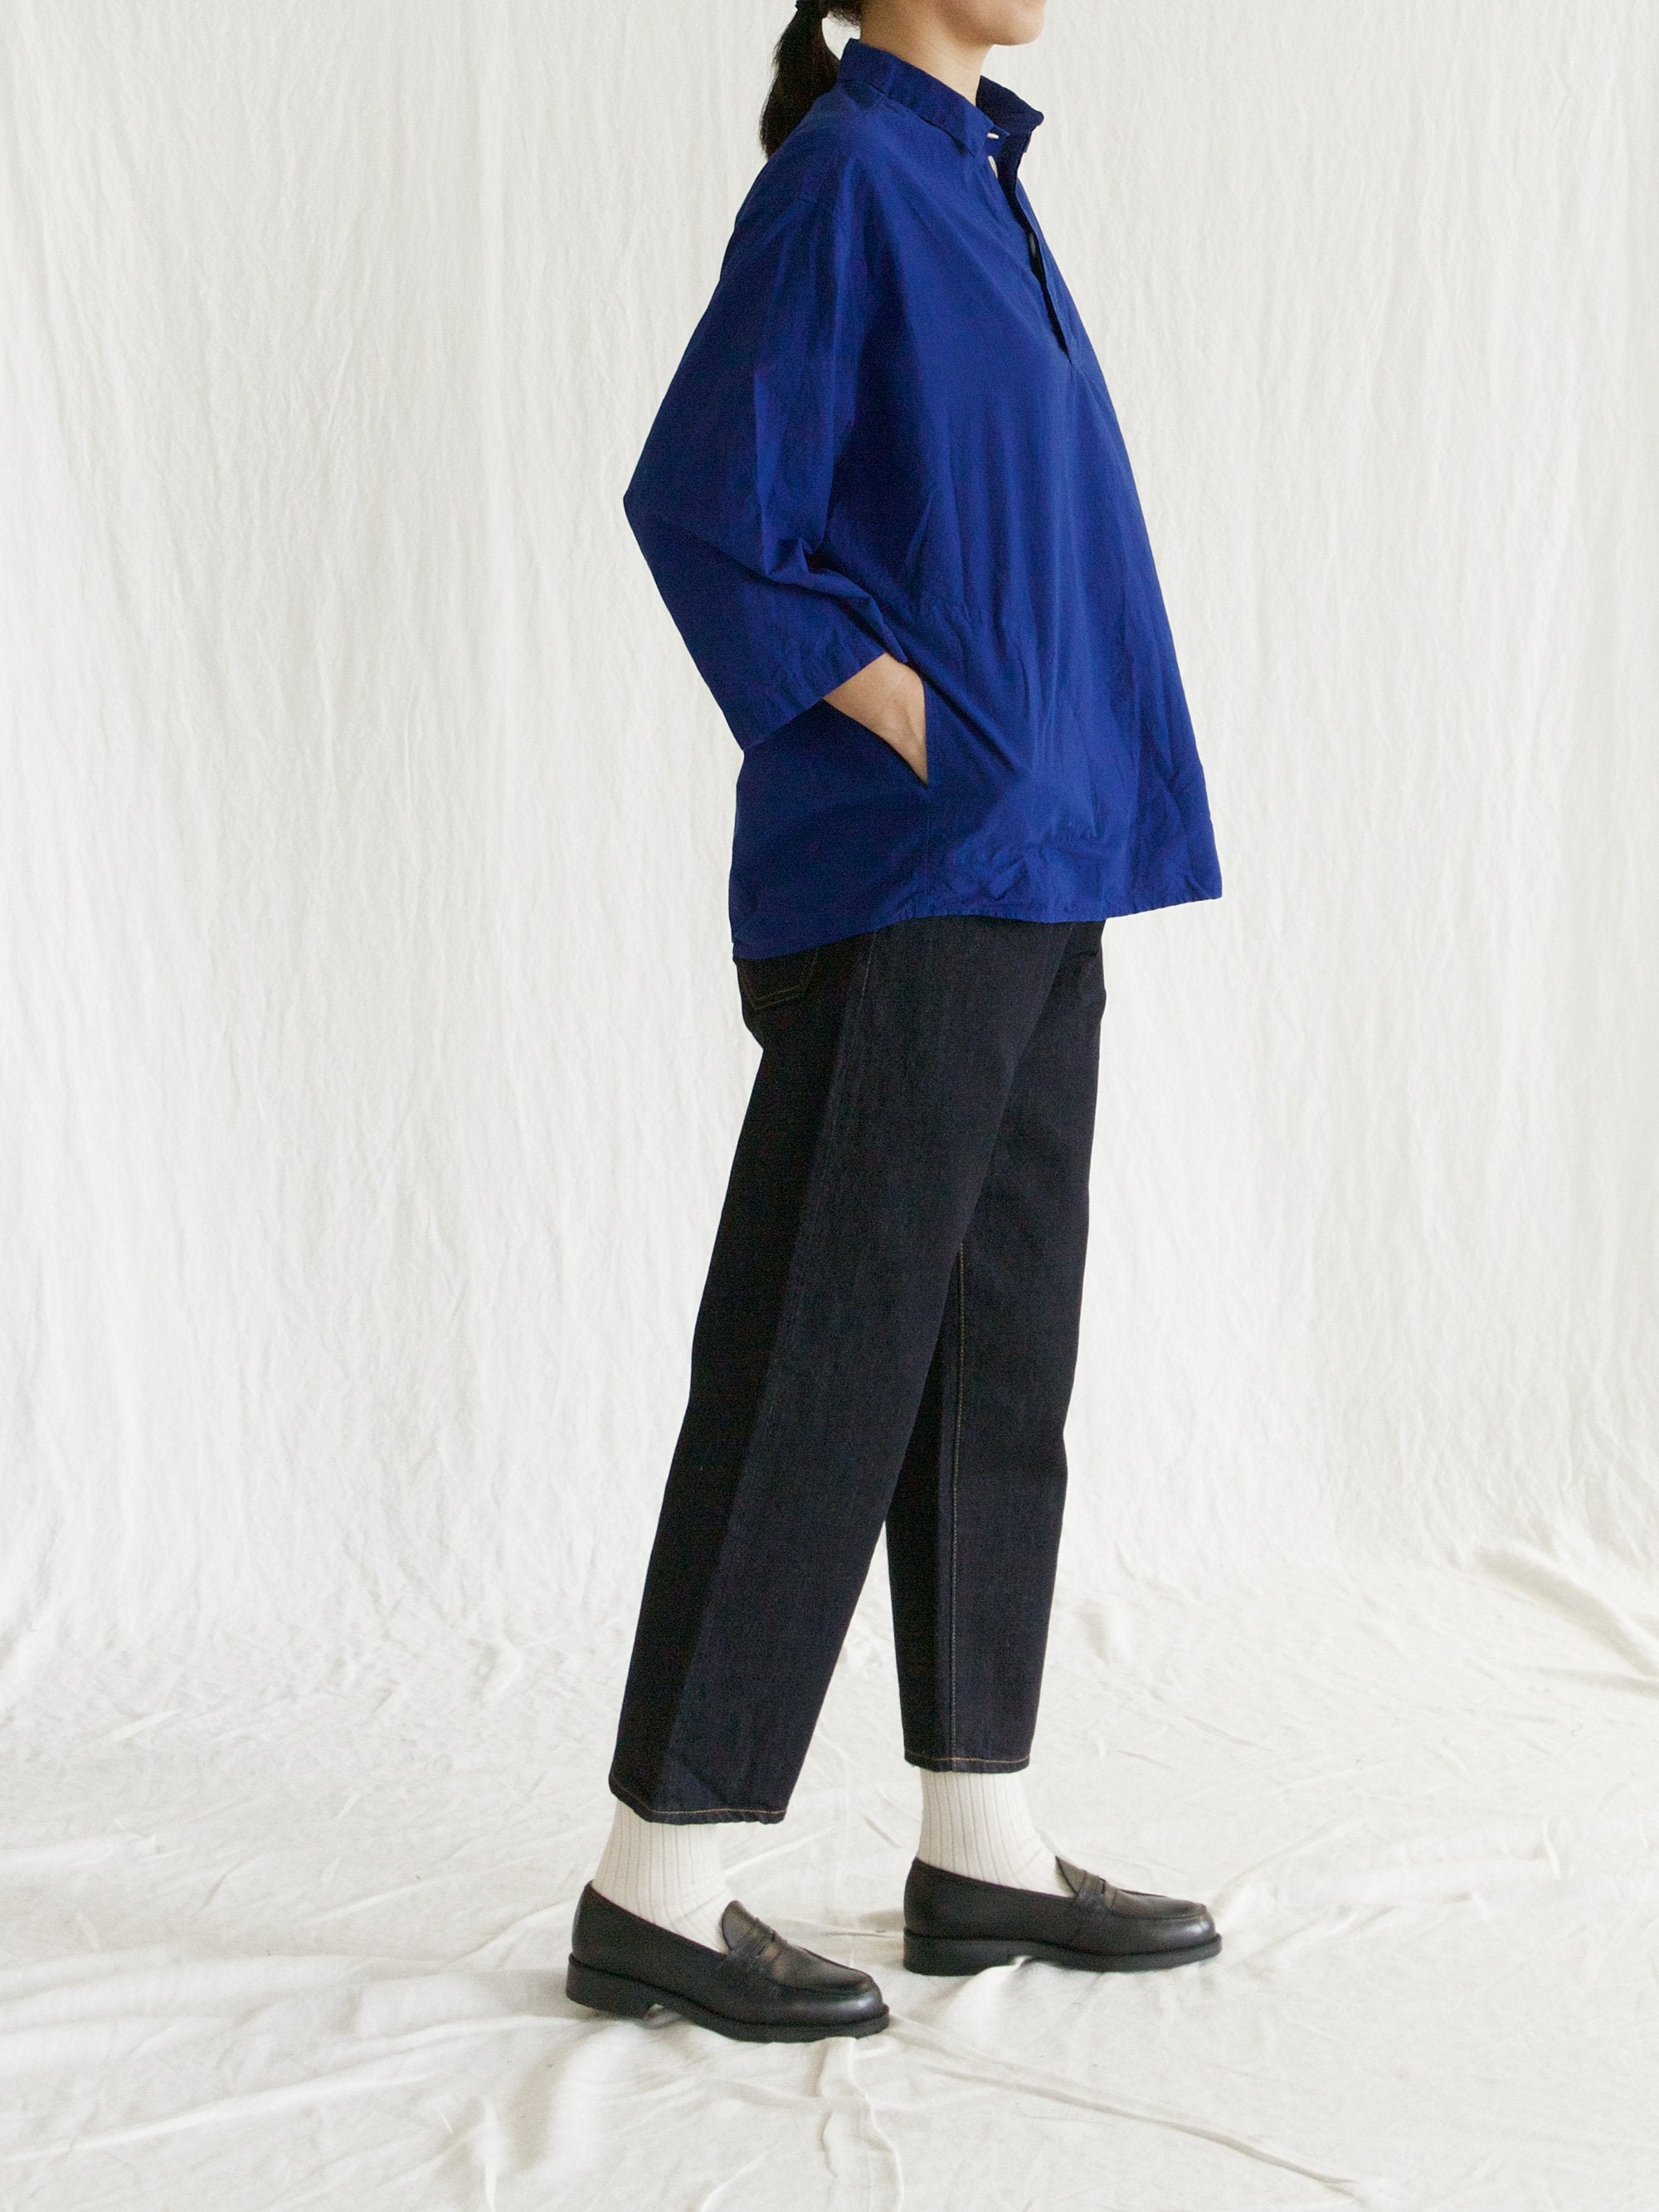 Namu Shop - Veritecoeur Co / Li Pocket Pullover Shirt - French Blue